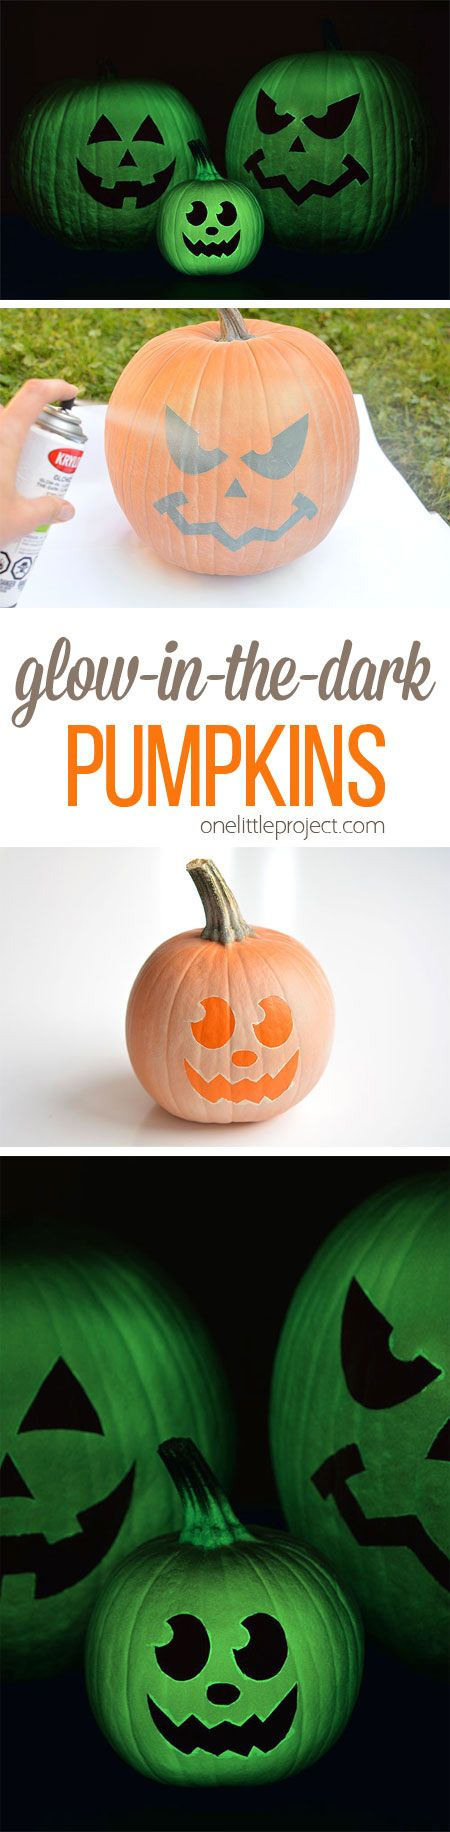 They look amazing in the dark, and look ghostly in the light. Such a fun and easy no-carve pumpkin idea for Halloween!